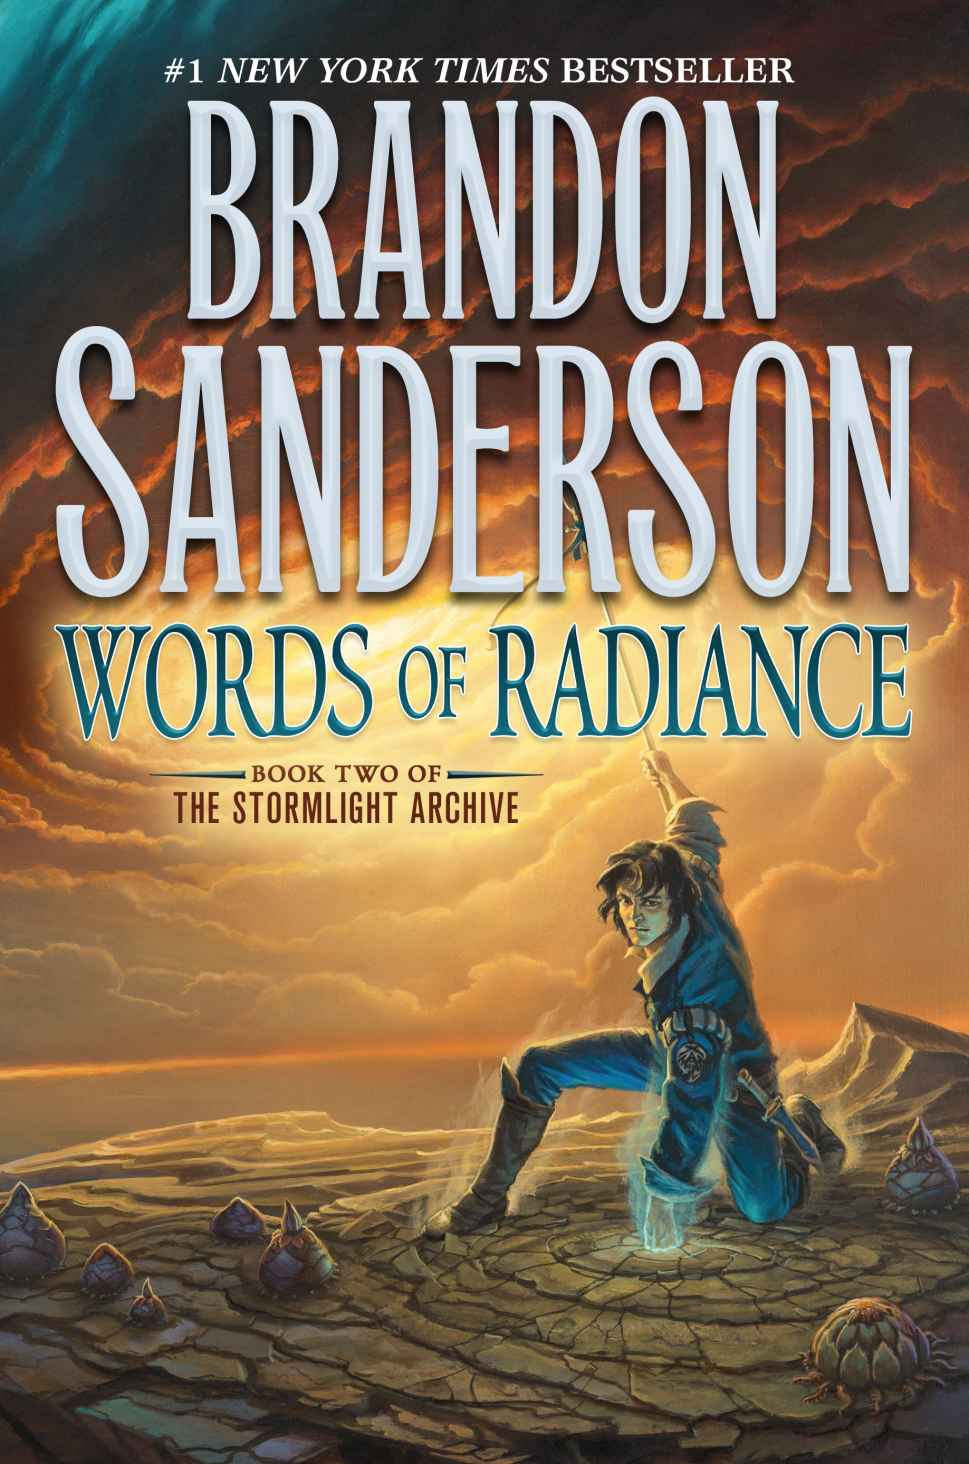 Words of Radiance by Brandon Sanderson (The Stormlight Archive #2)